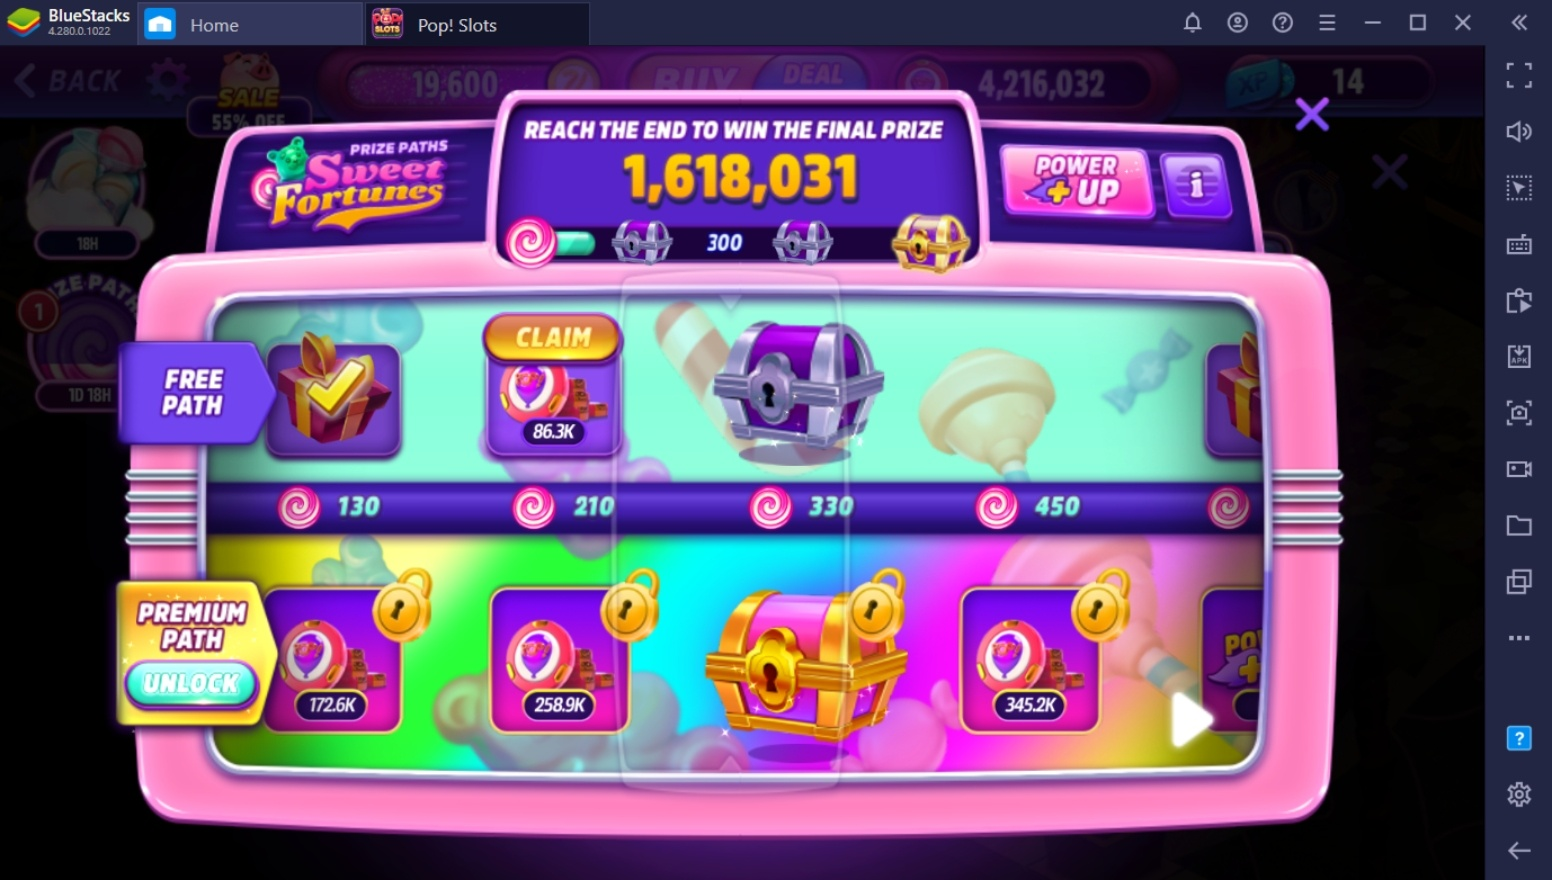 Guide to Getting More Chips in POP! Slots Casino